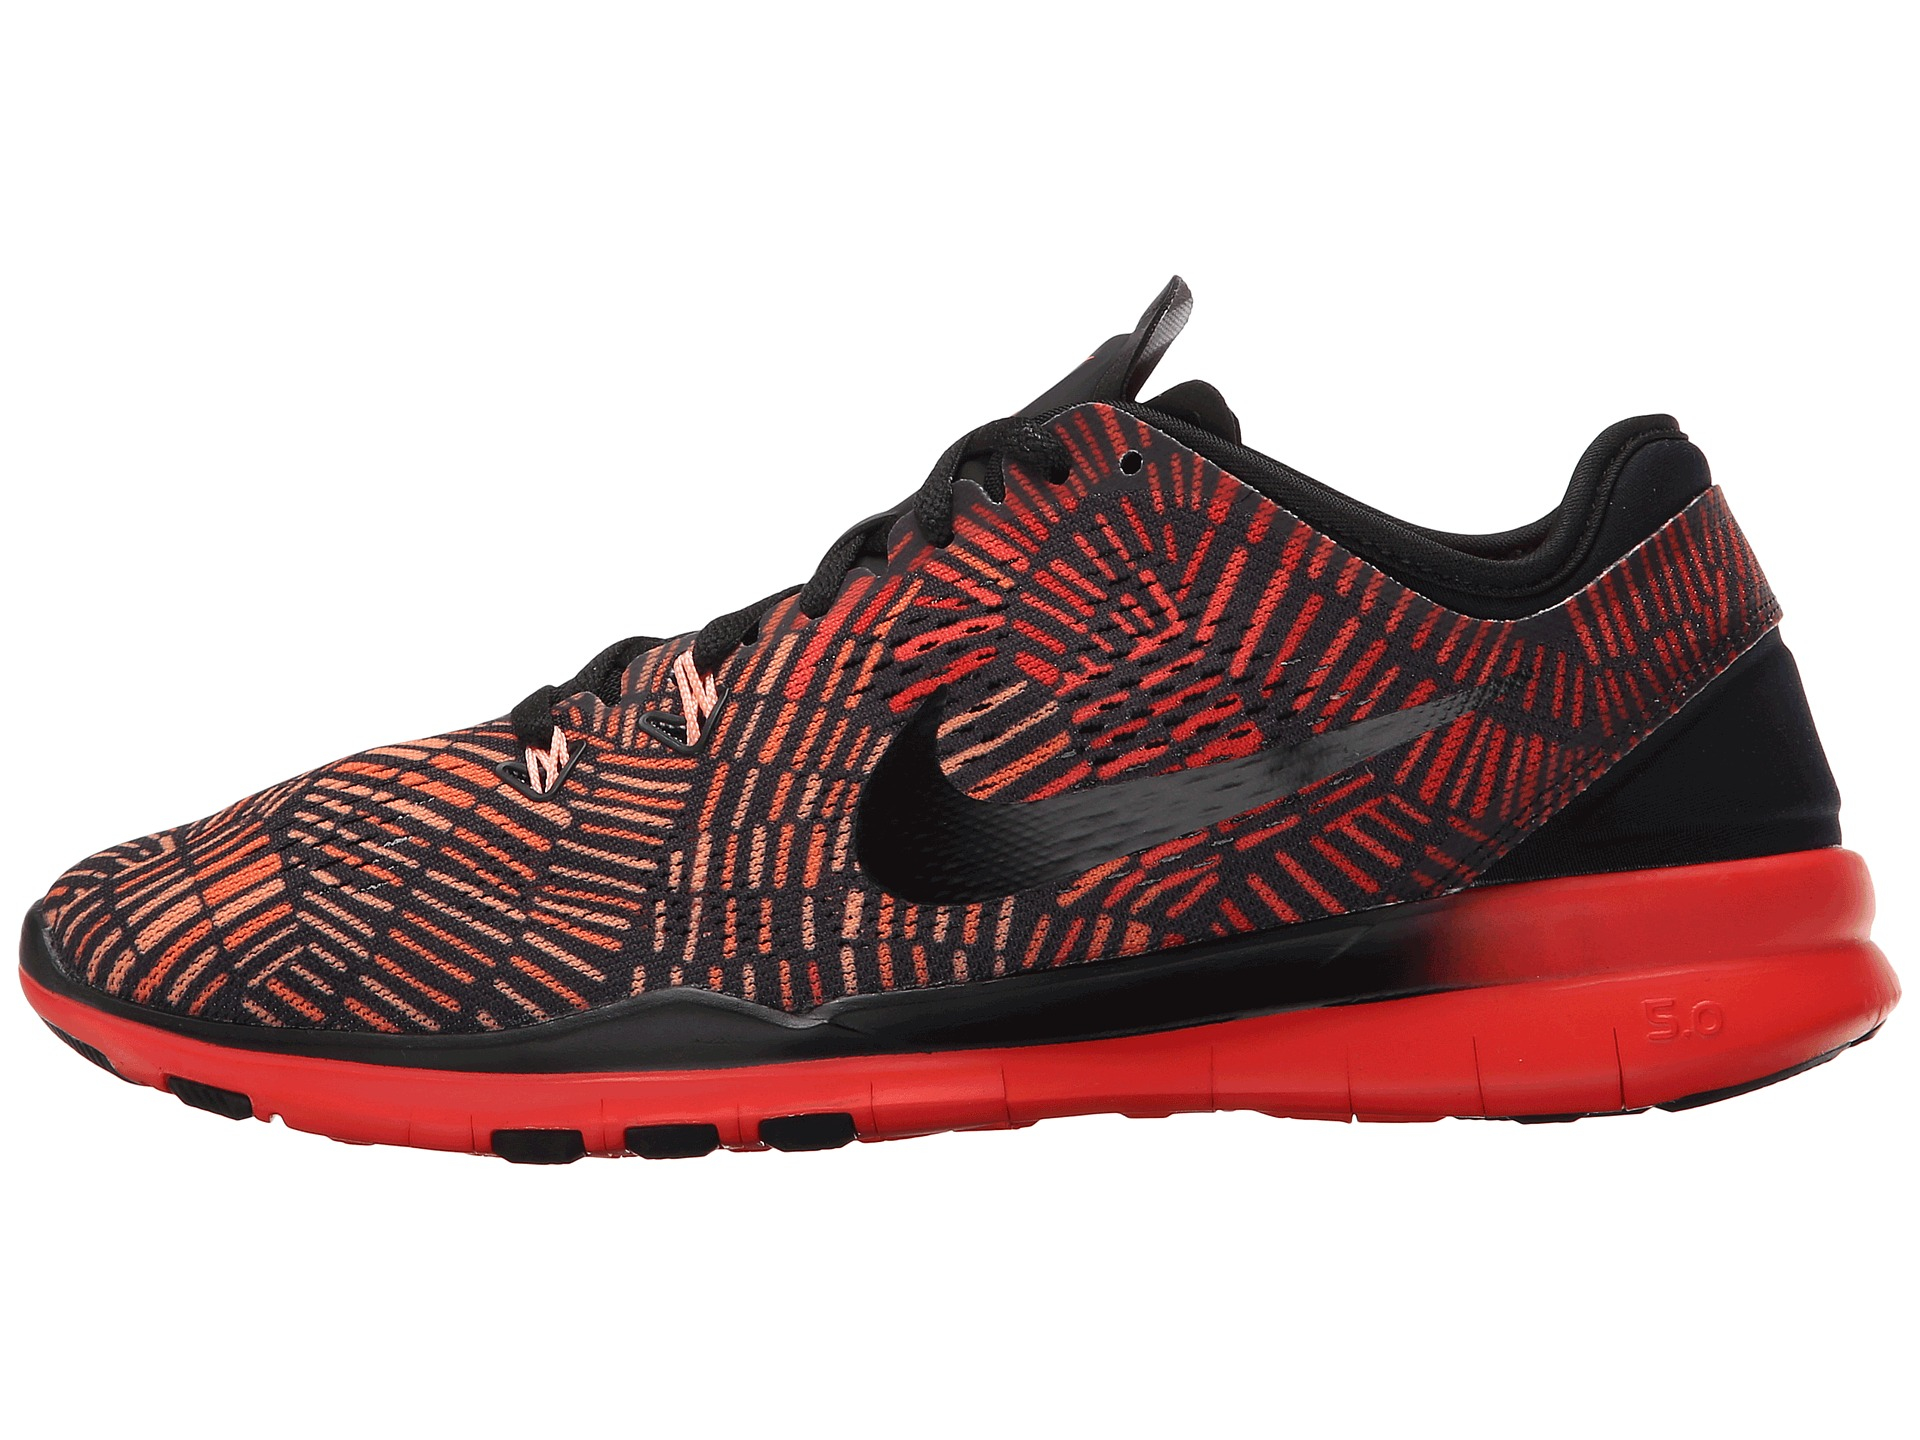 80ad4d2ab5d0 ... training shoe ba6aa 9639d  wholesale lyst nike free 5.0 tr fit 5 prt in  red 3e84a 8e424